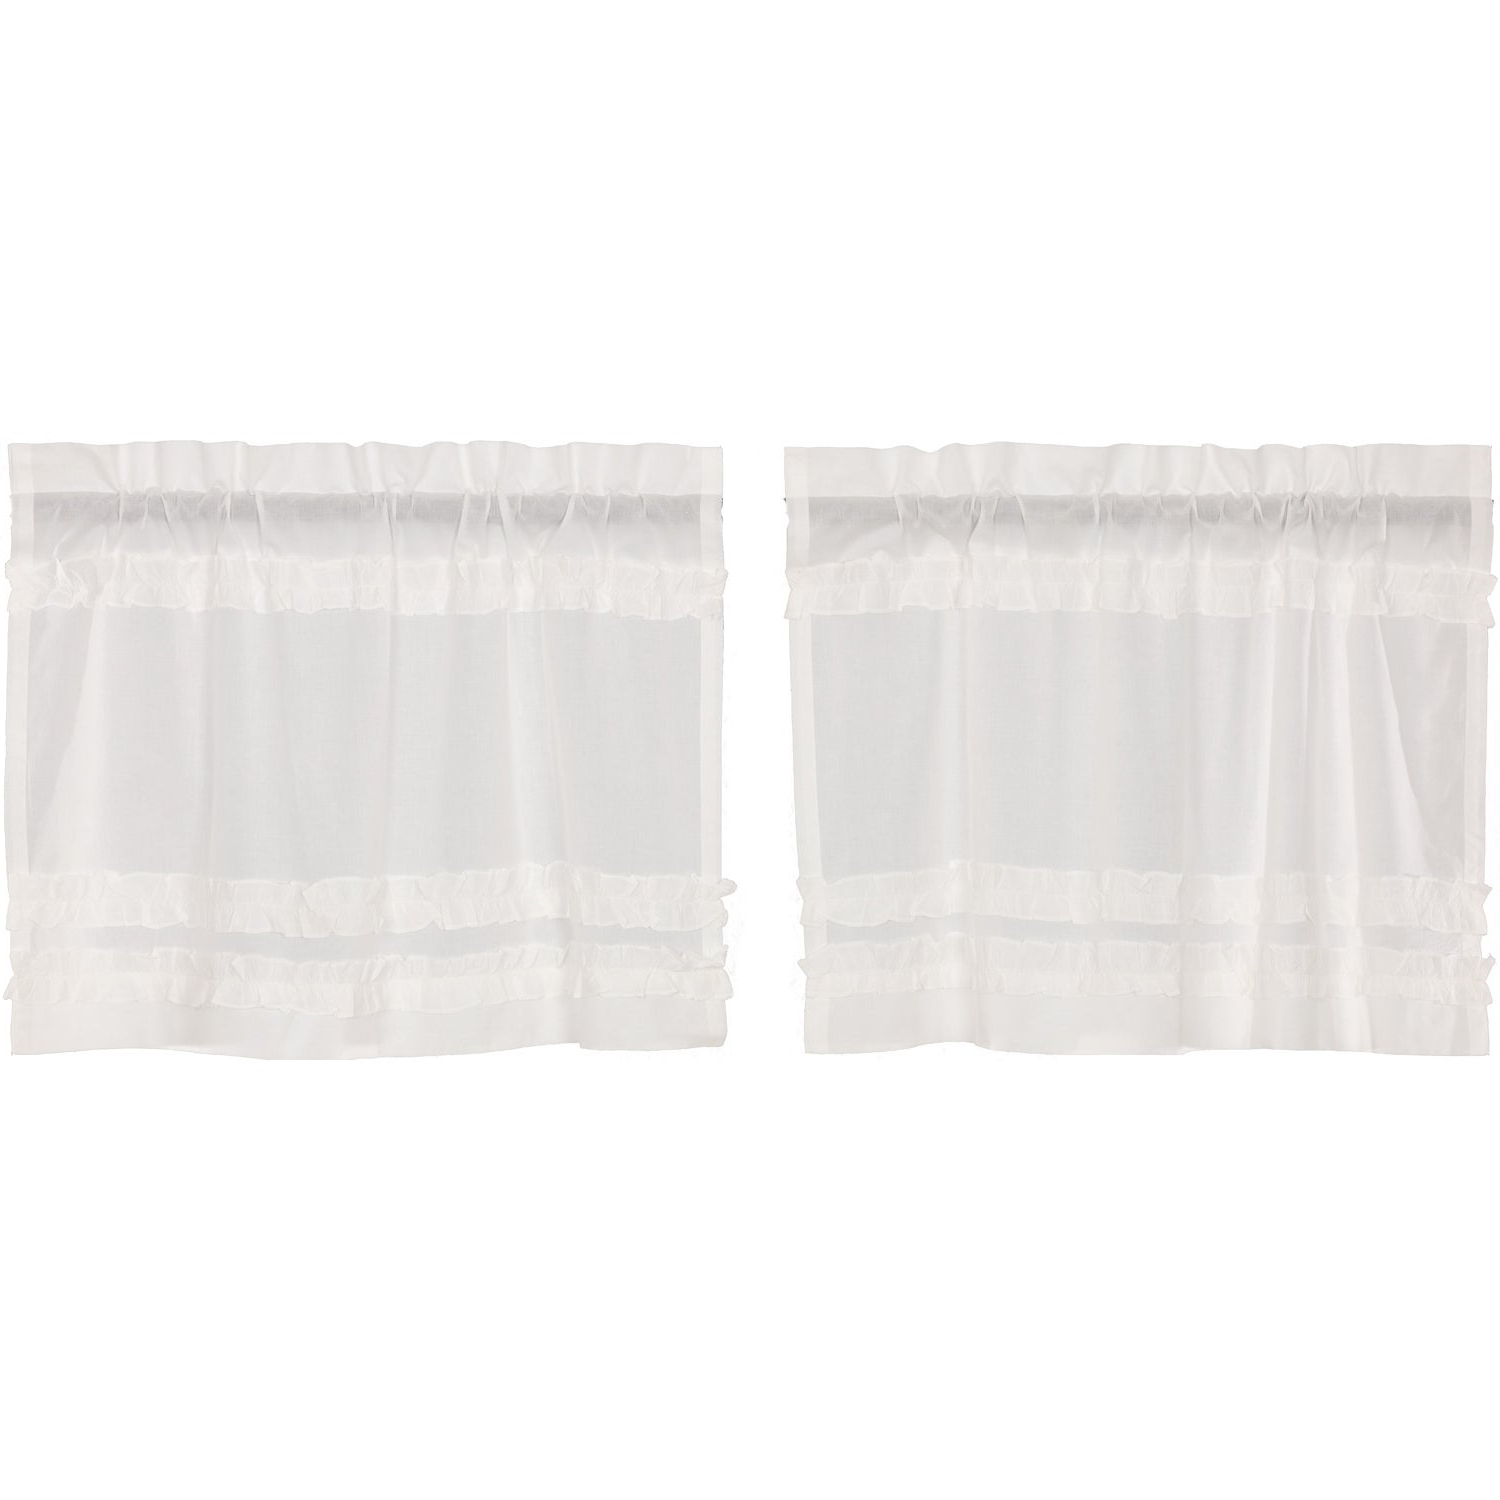 2021 White Ruffled Sheer Petticoat Tier Pairs Pertaining To White Farmhouse Kitchen Curtains Vhc White Ruffled Sheer Petticoat Tier Pair Rod Pocket Cotton Solid Color Ruched Ruffle (View 2 of 20)